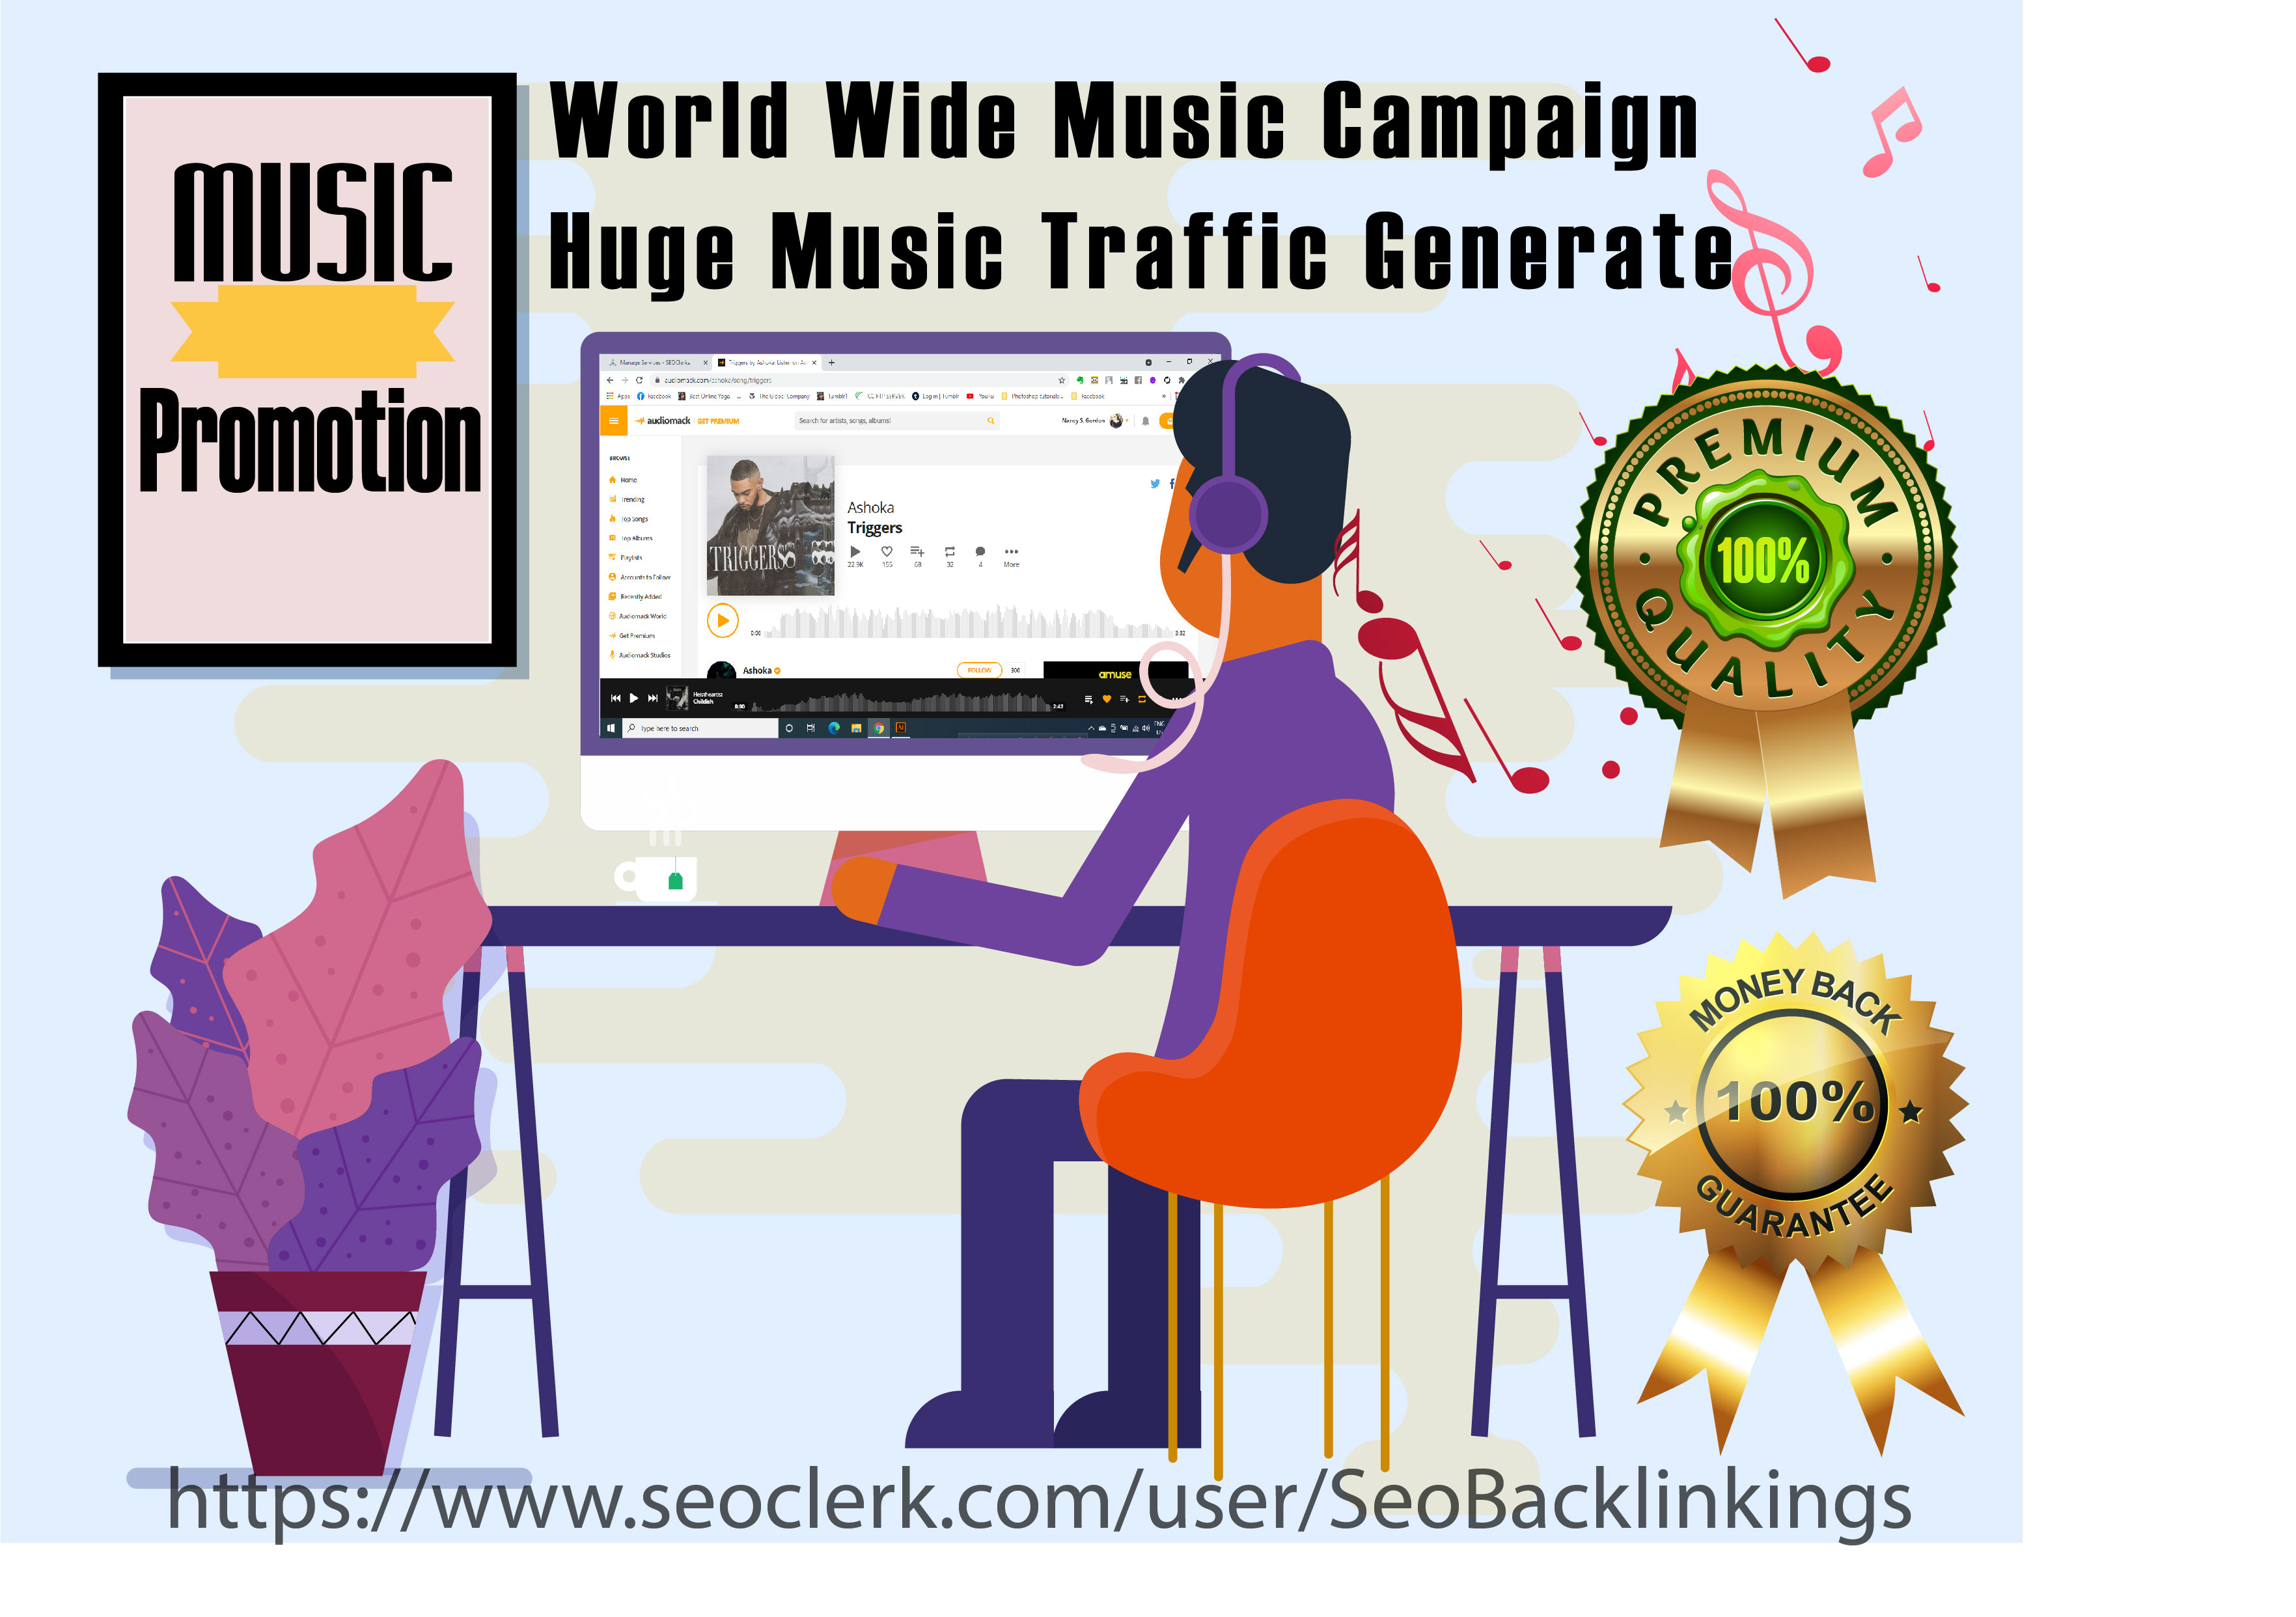 Worldwide Music Campaign with Huge Organic Audiomack Music Traffic